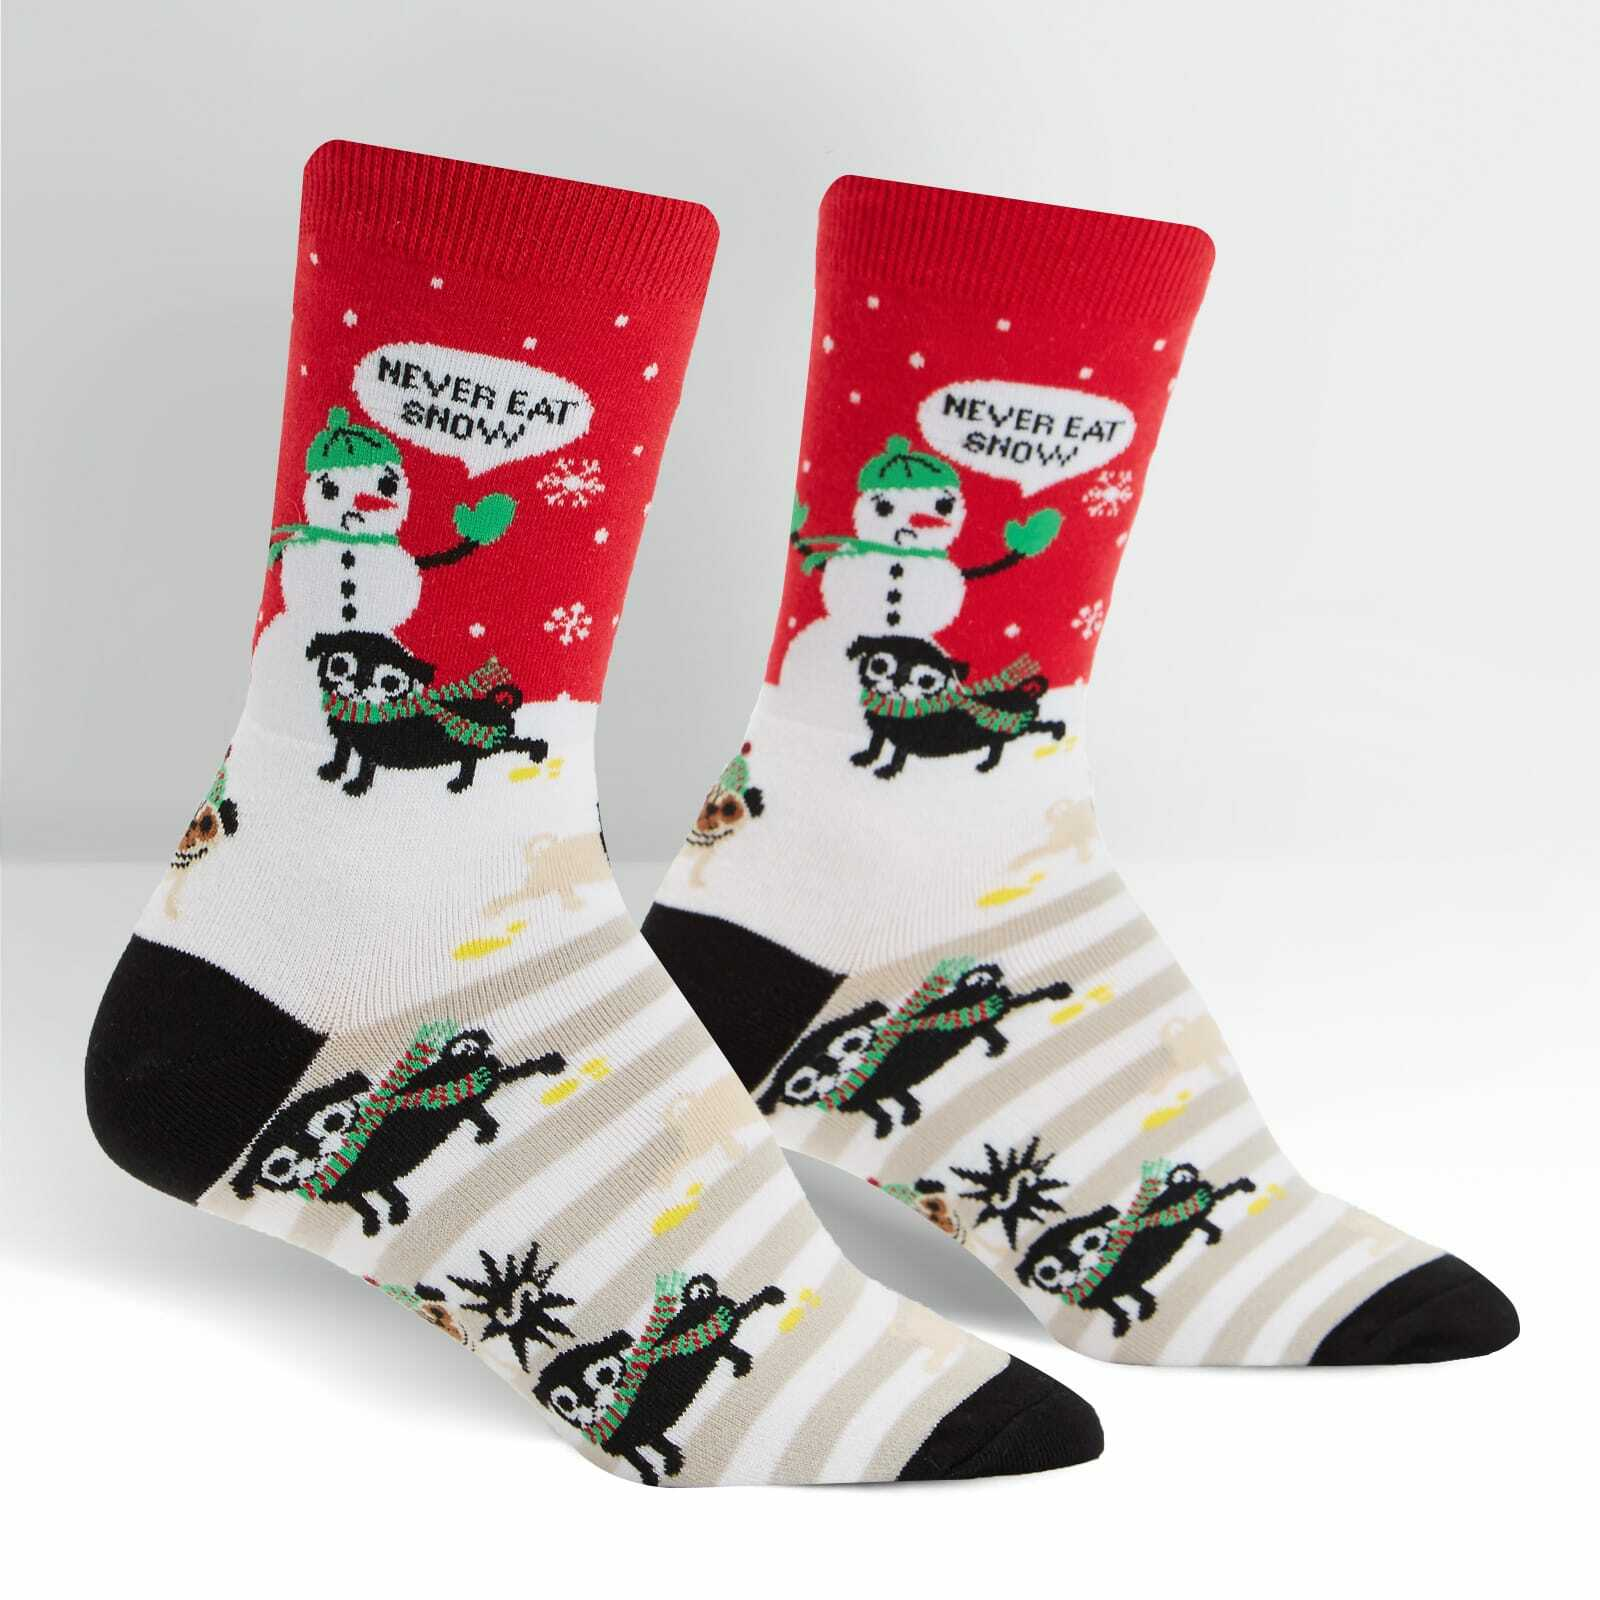 Women's Never Eat Snow - Funny Dog Holiday Red Women's Crew Socks - Sock It to Me in Red